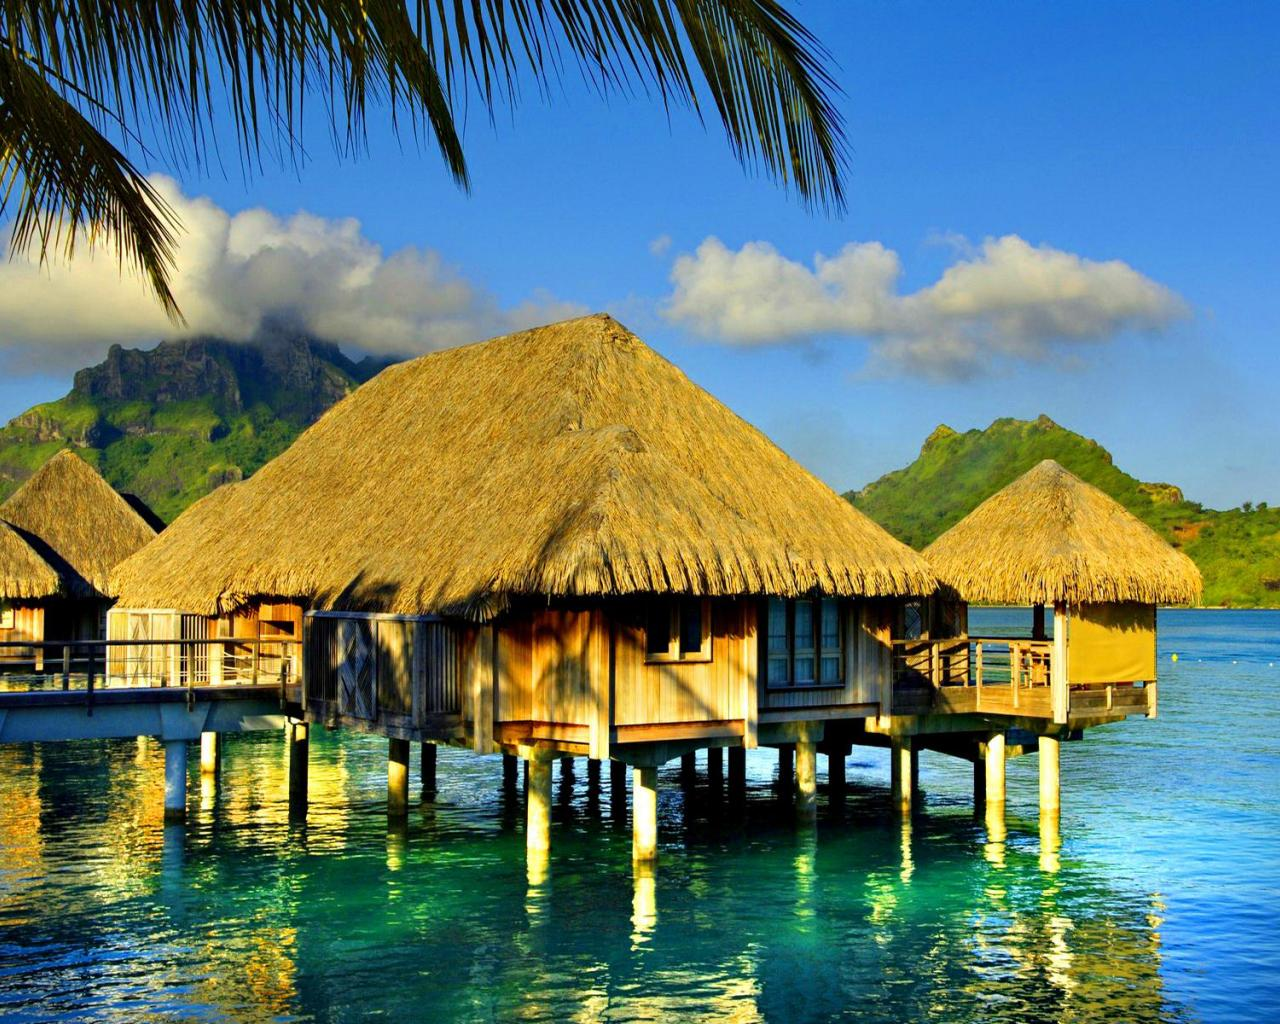 Bora bora   127949   High Quality and Resolution Wallpapers on 1280x1024